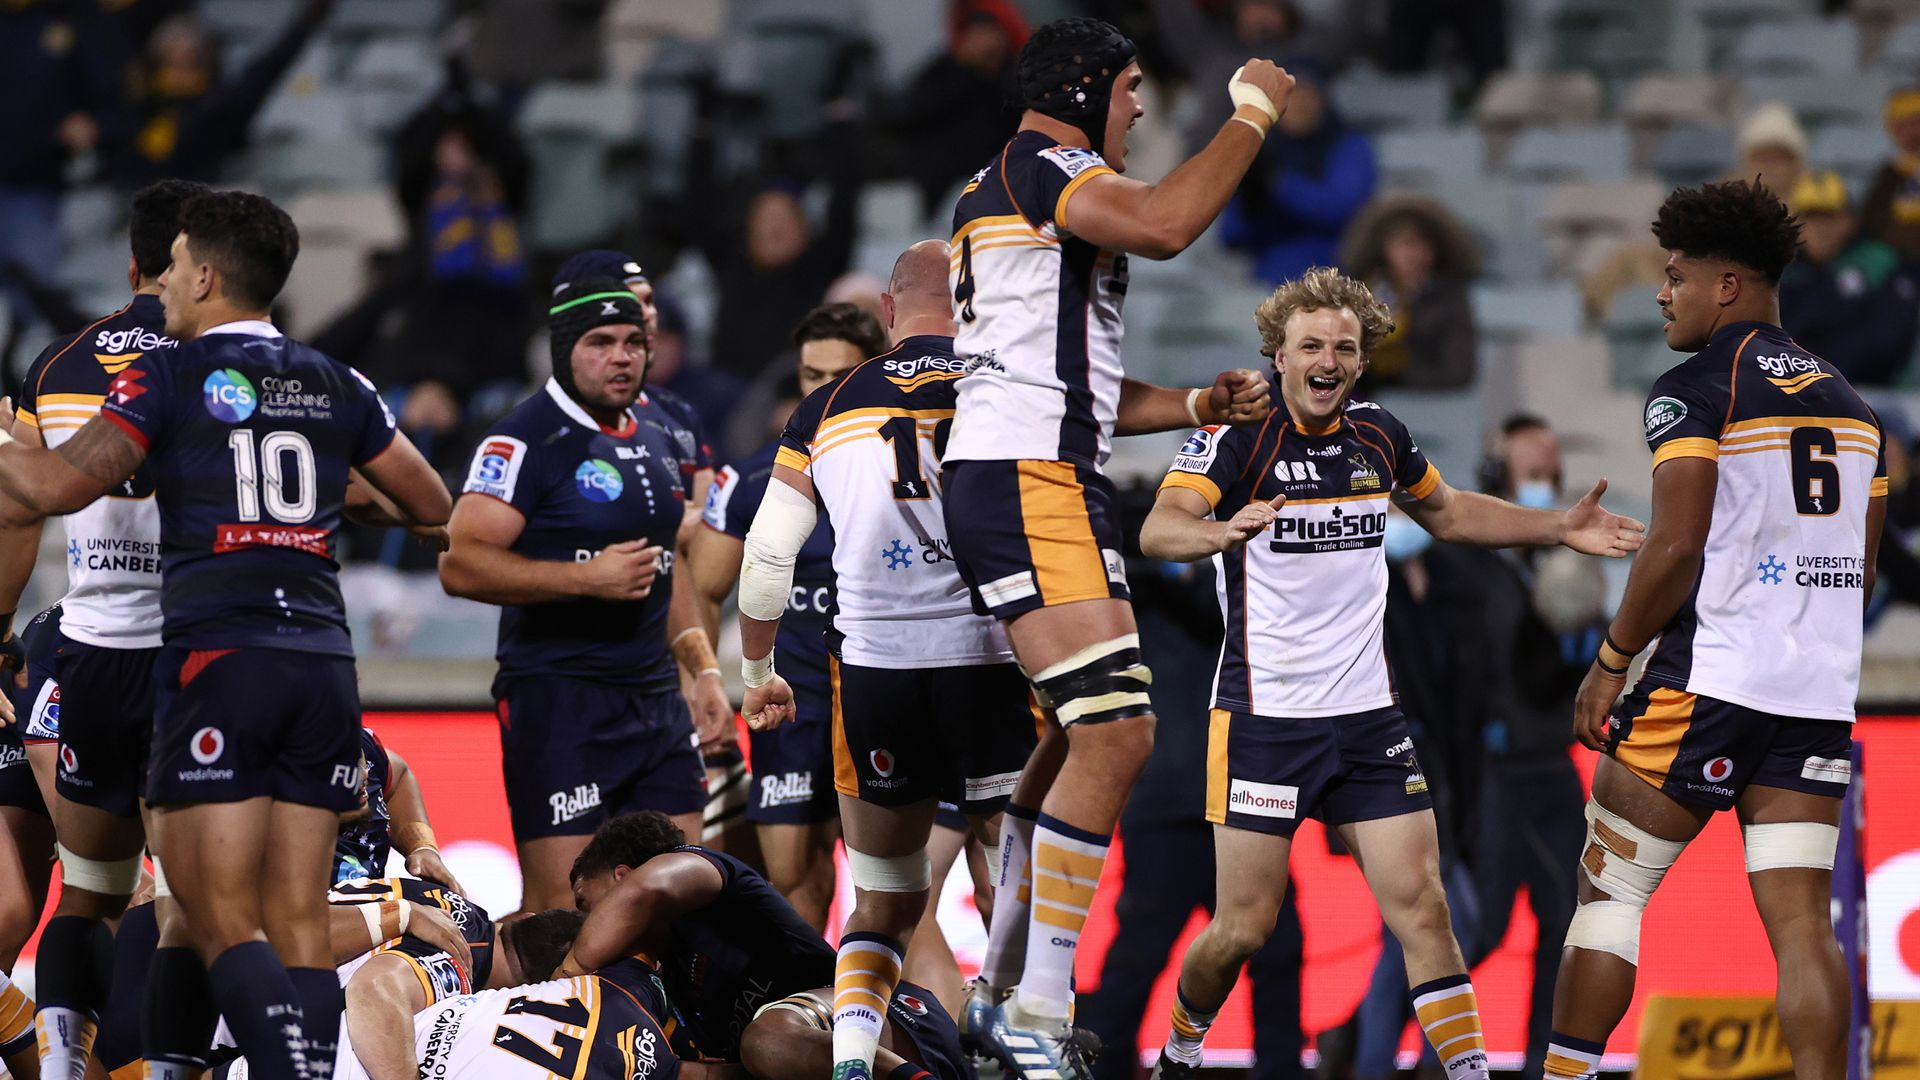 Brumbies hold off Rebels - sky sports